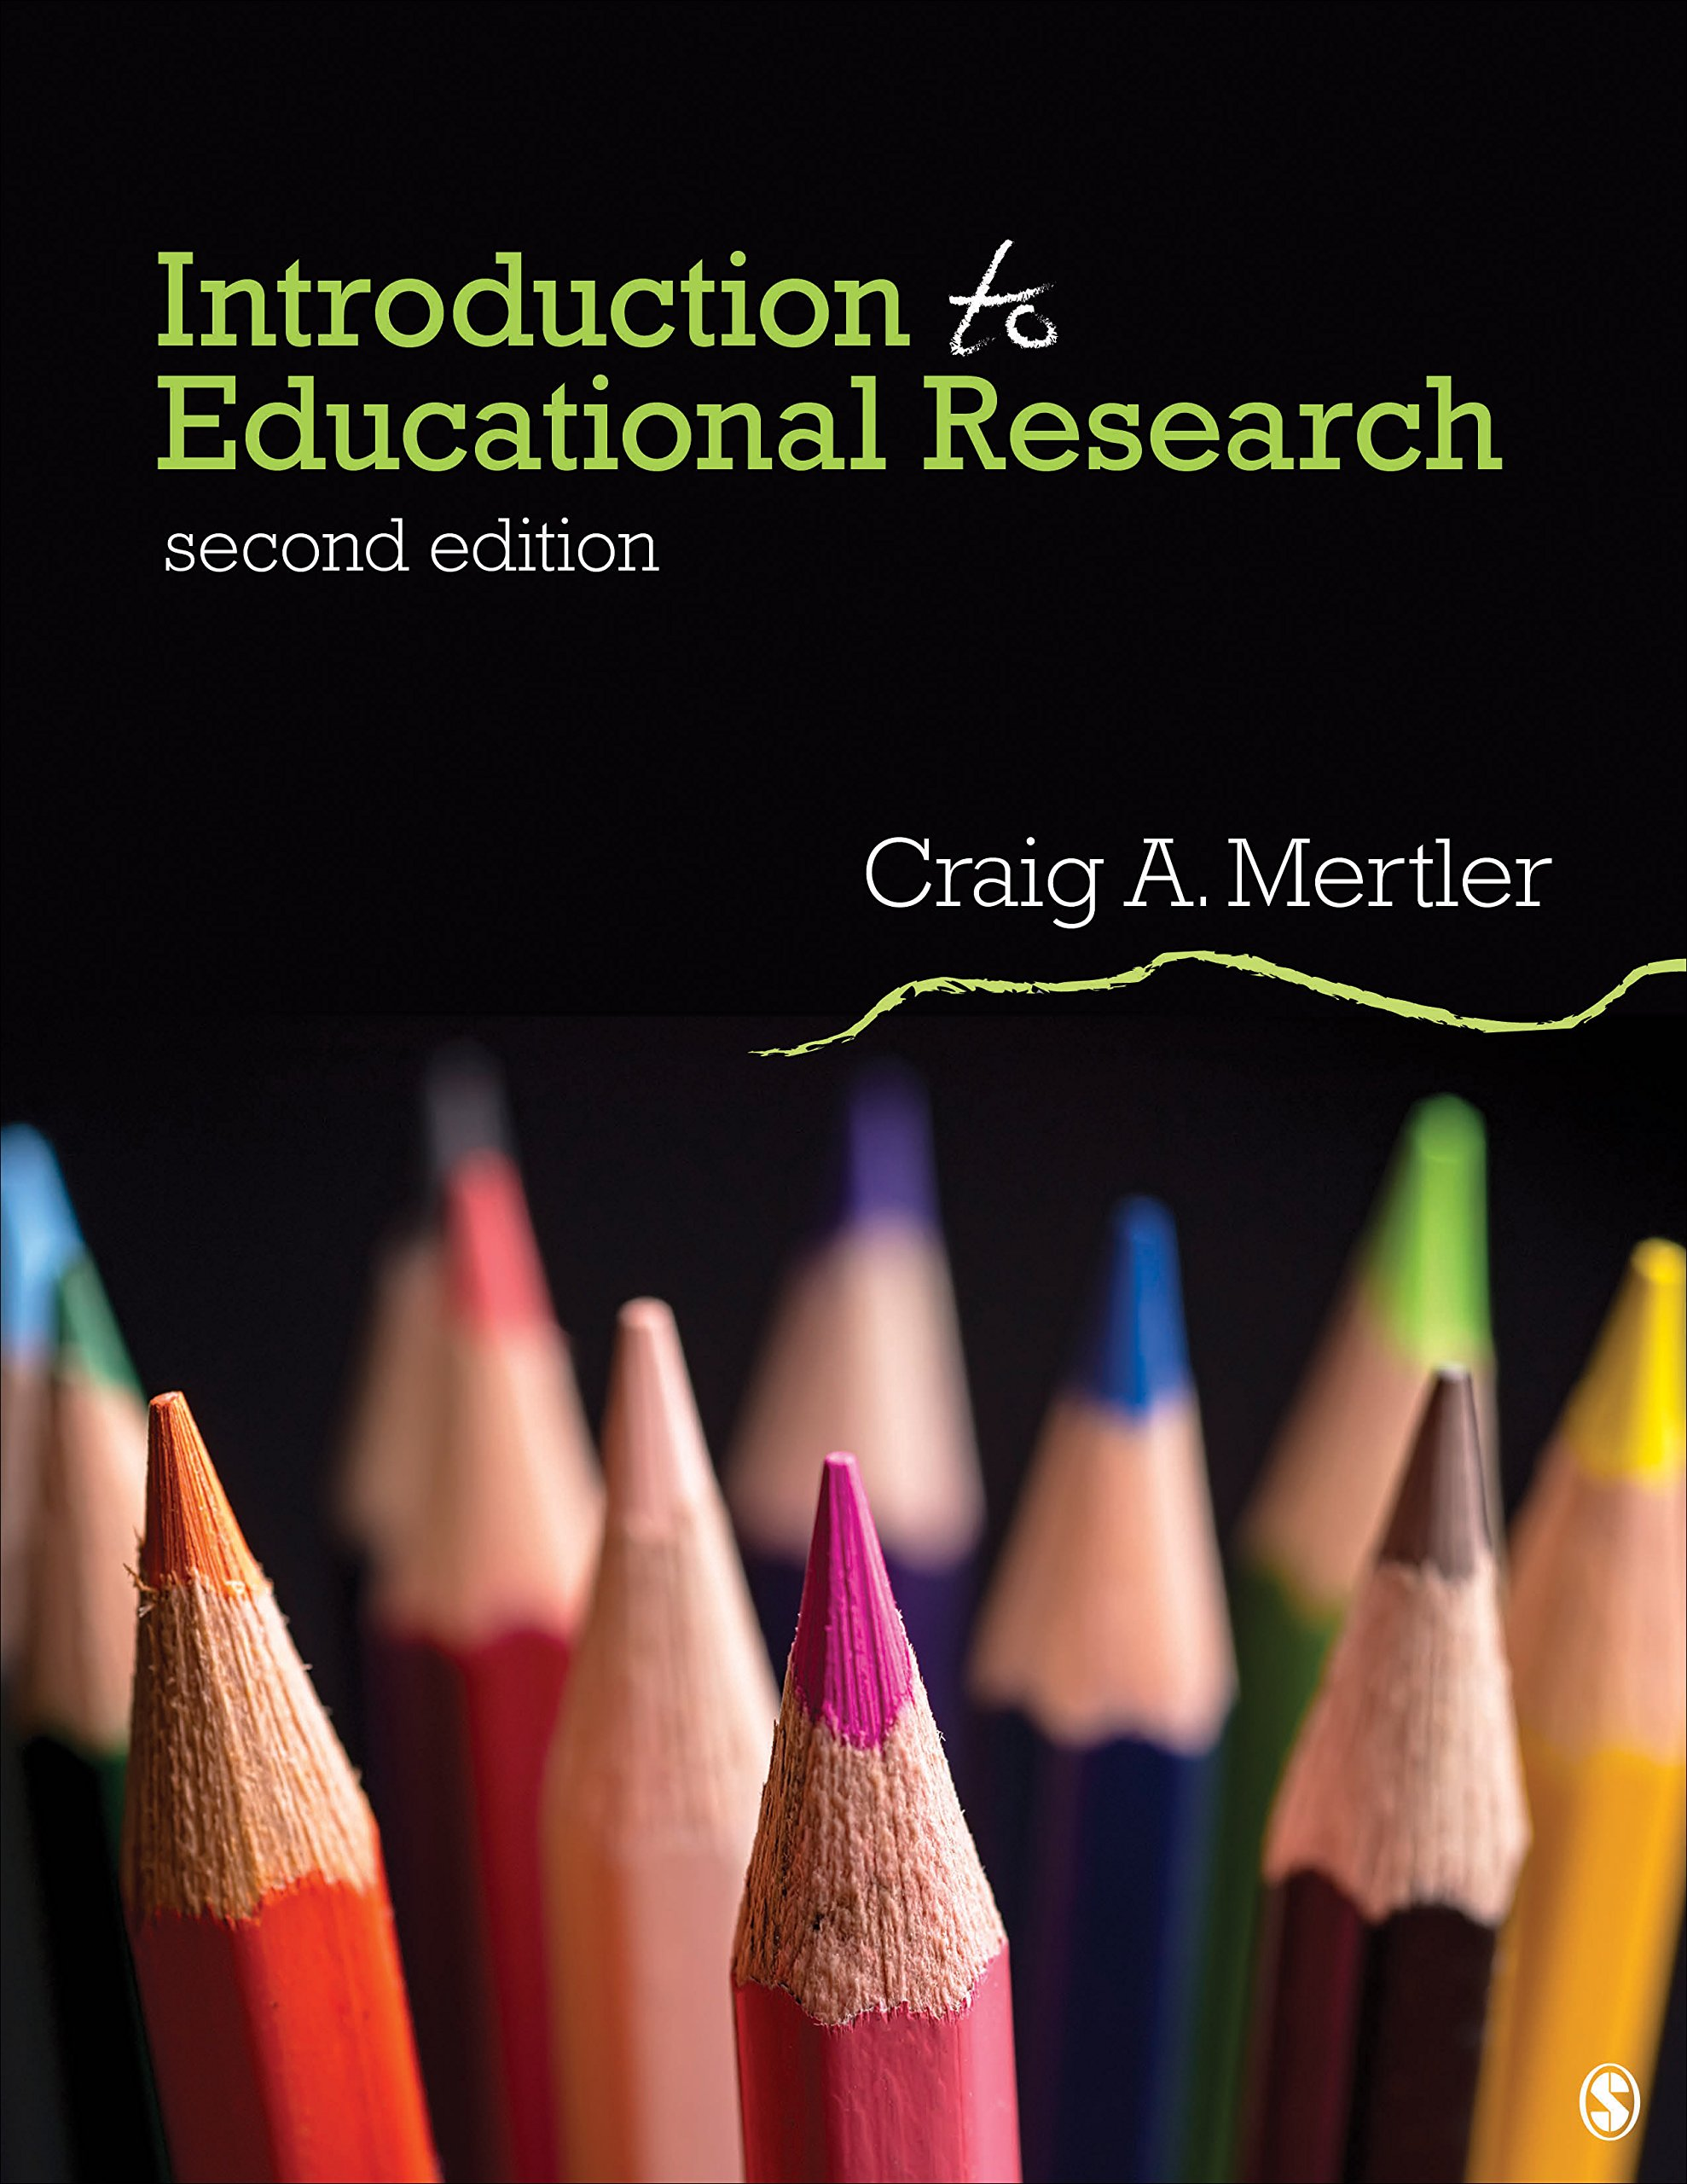 Introduction to Educational Research by SAGE Publications, Inc